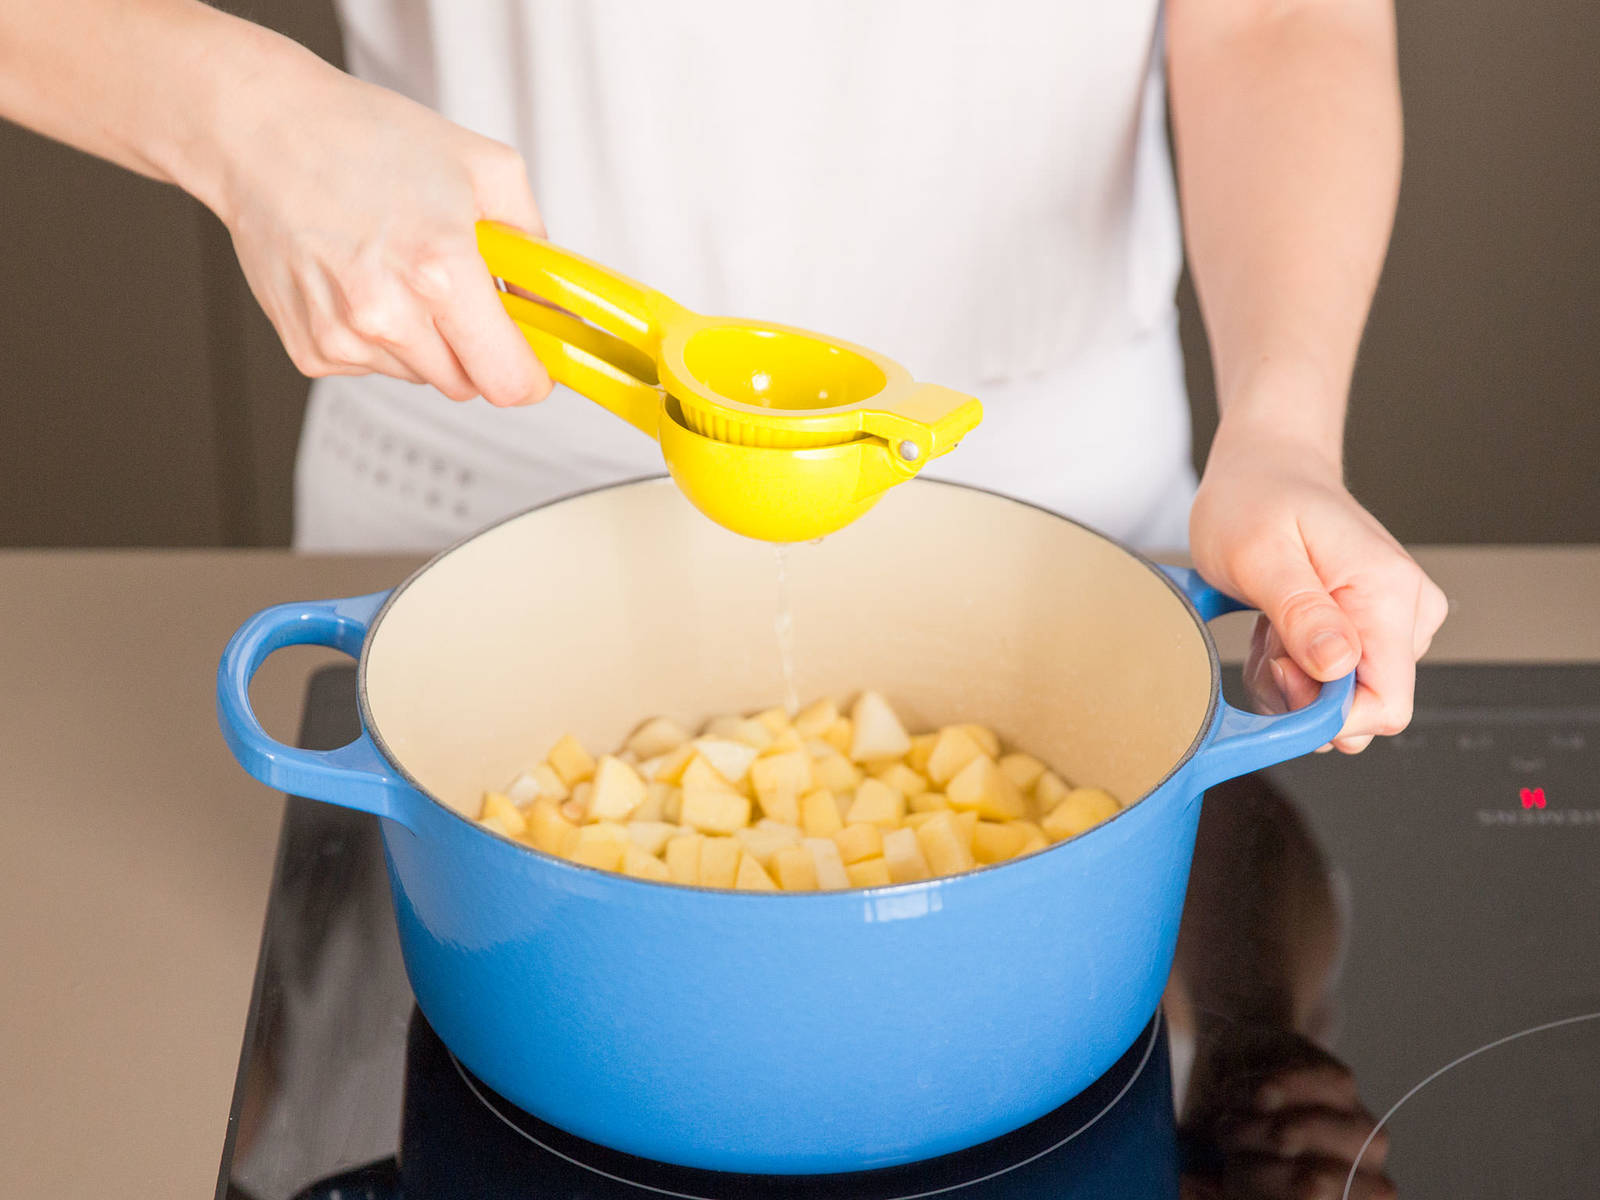 Bring fruit pieces, gelling sugar, tarragon, and a pinch of salt to a boil. Deglaze with lemon juice and allow to reduce, according to the gelling sugar's package instructions.